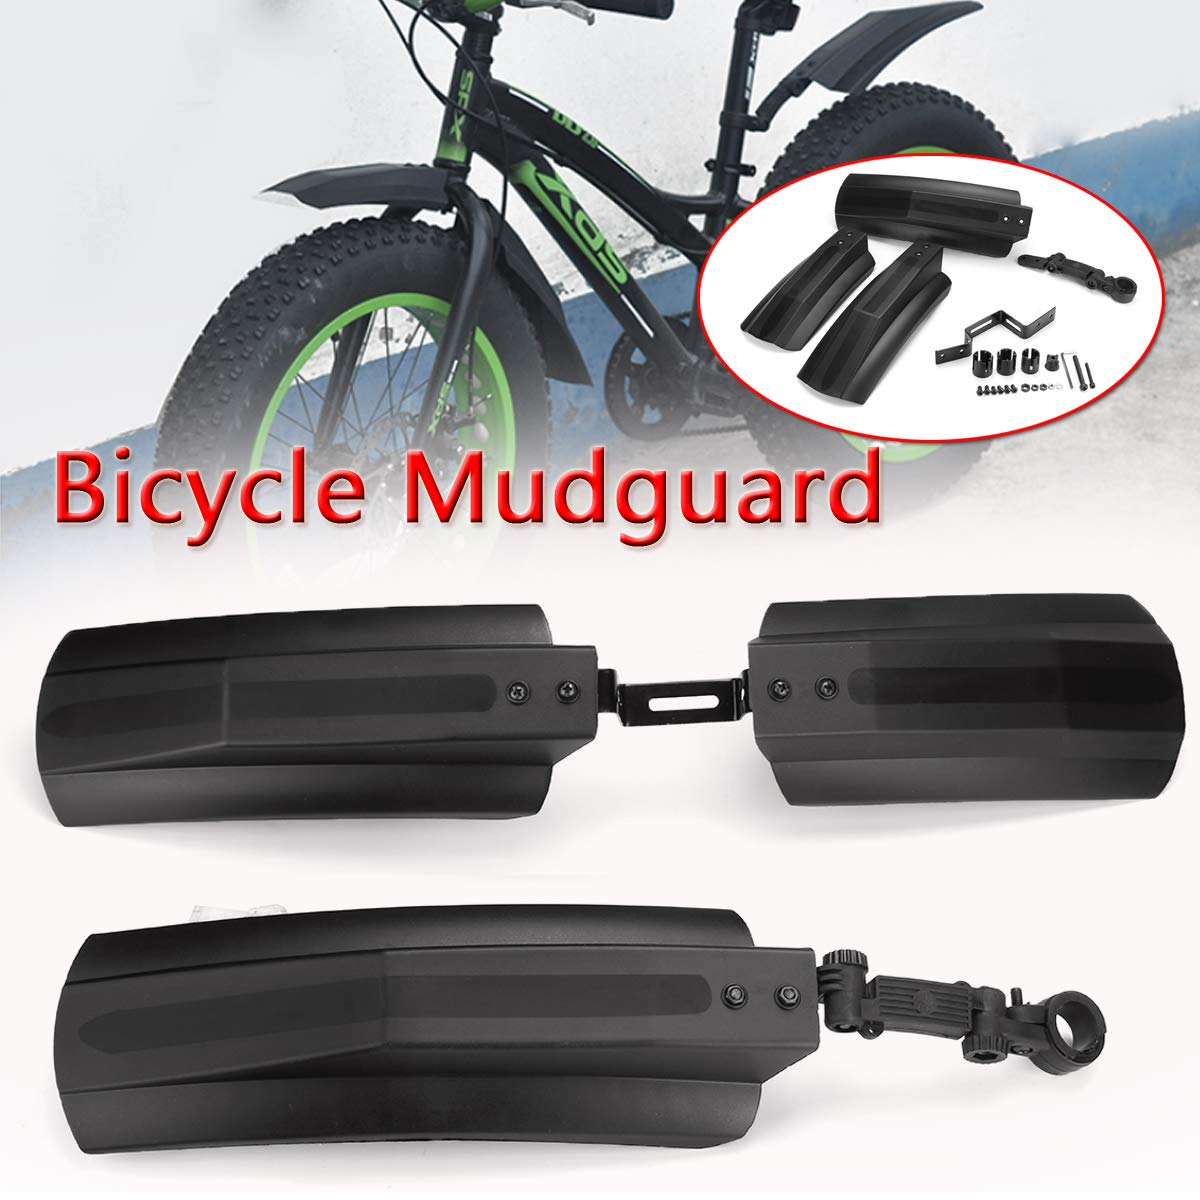 Amazon.com : SONSAN Bicycle Mudguard, 26 inch Snow Bicycle Bike Front Rear Mudguard Cycling Bike Fender for Fat Tire Mountain Bike : Sports & Outdoors